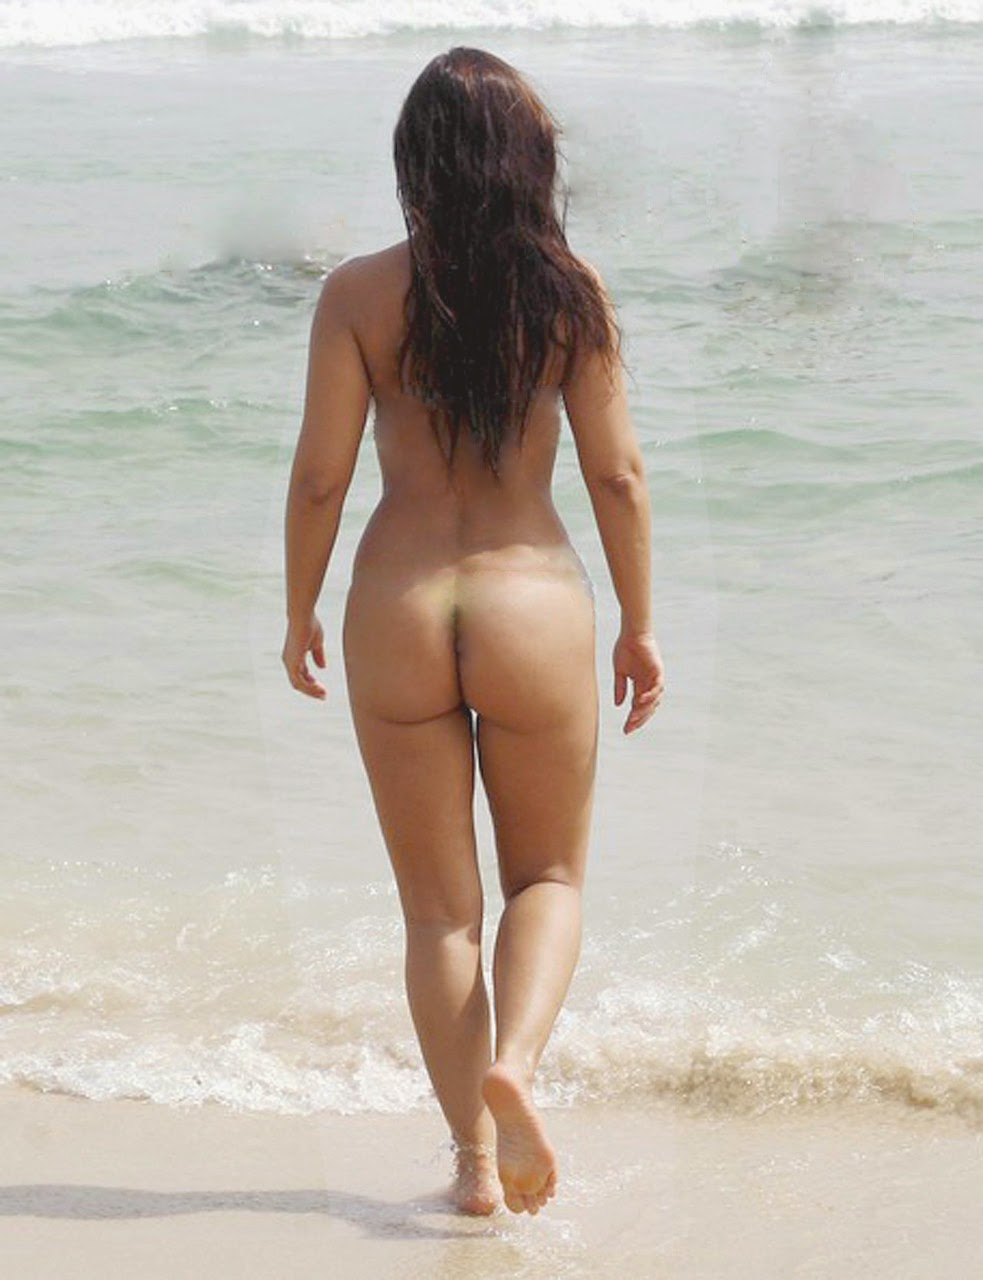 Nana Gouvea Showing Off Her Bikini Body In Rio (Photoshop)